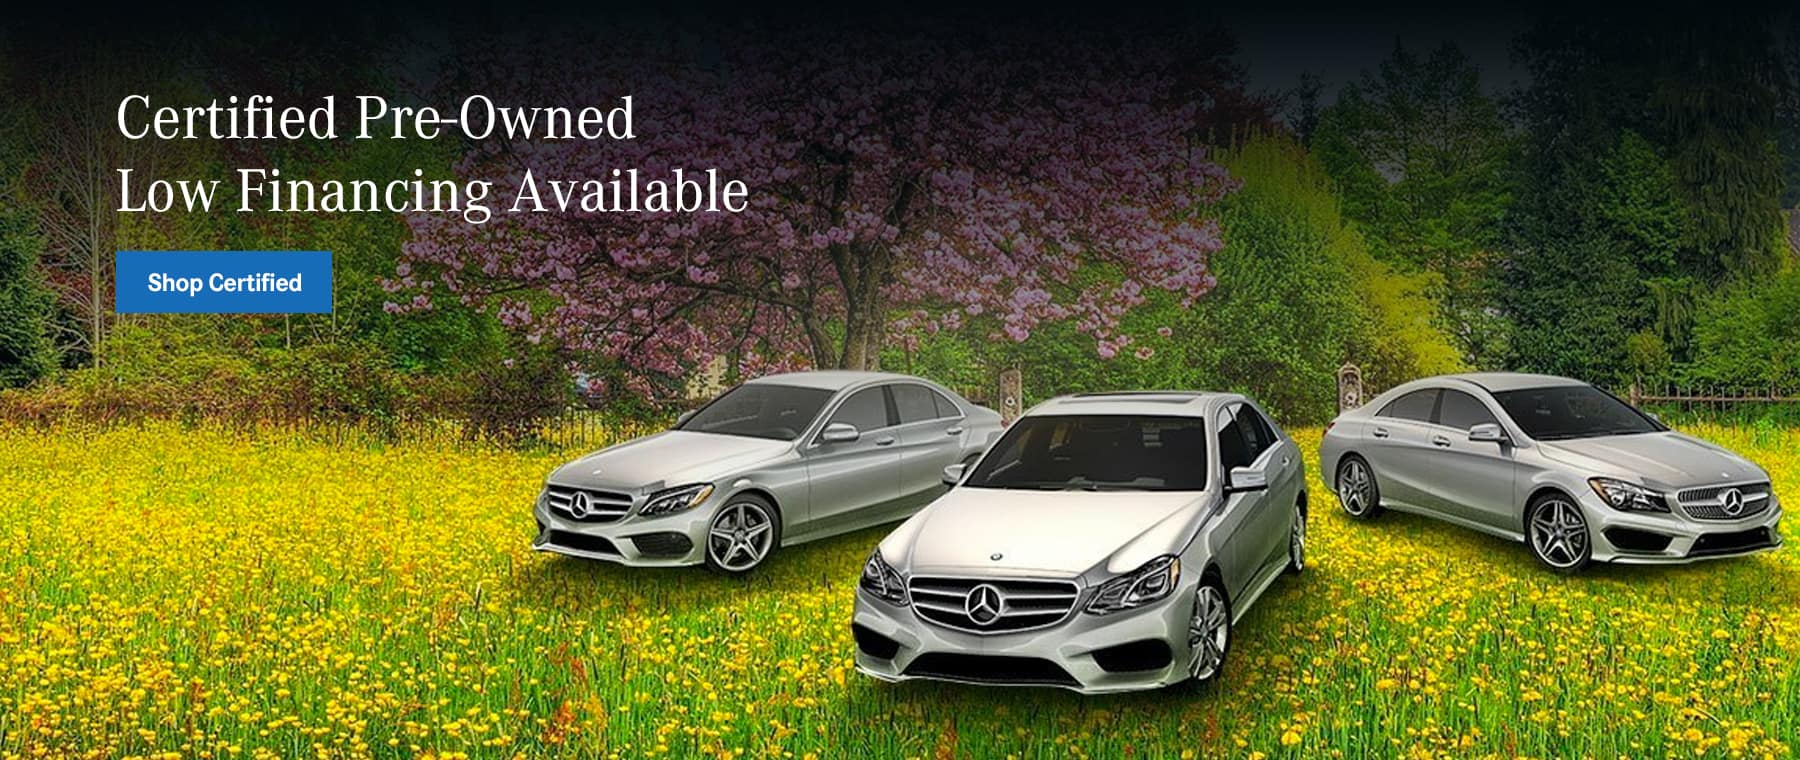 Mercedes Benz Of Fairfield New Used Ct Luxury Auto Dealership